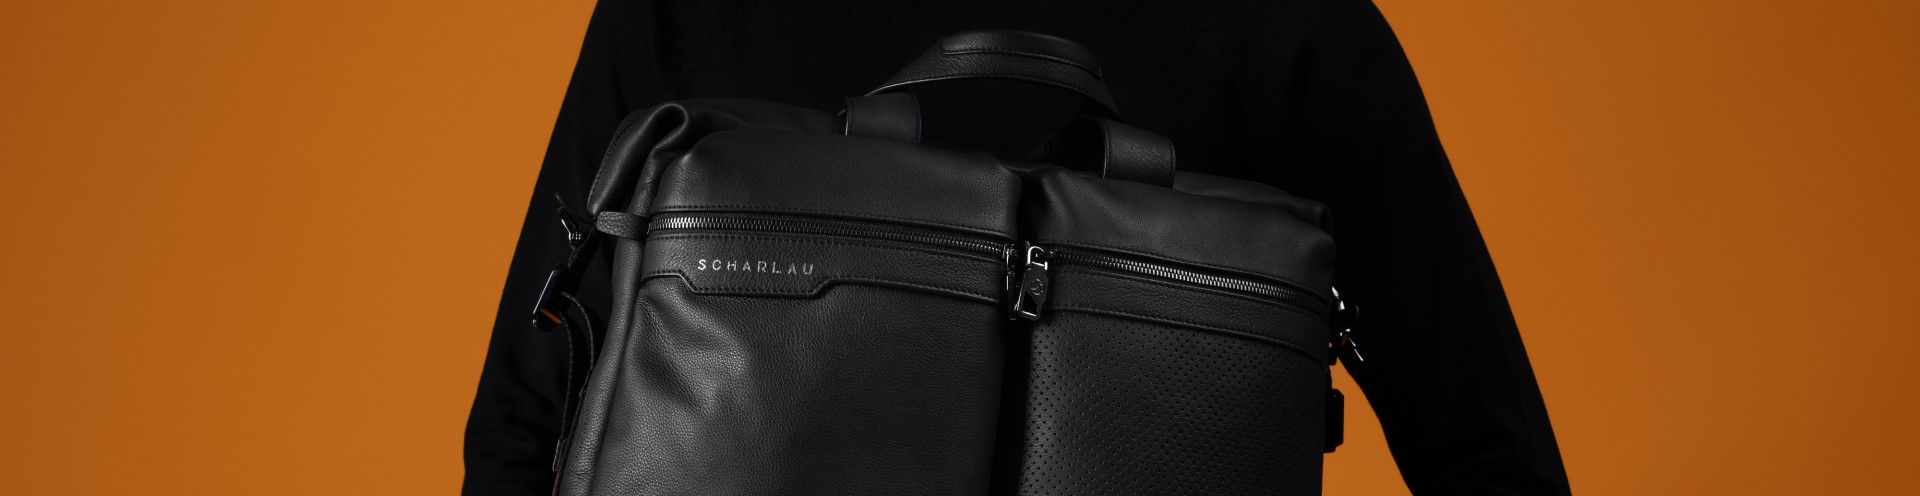 Leather Briefbags & Backpacks for Business